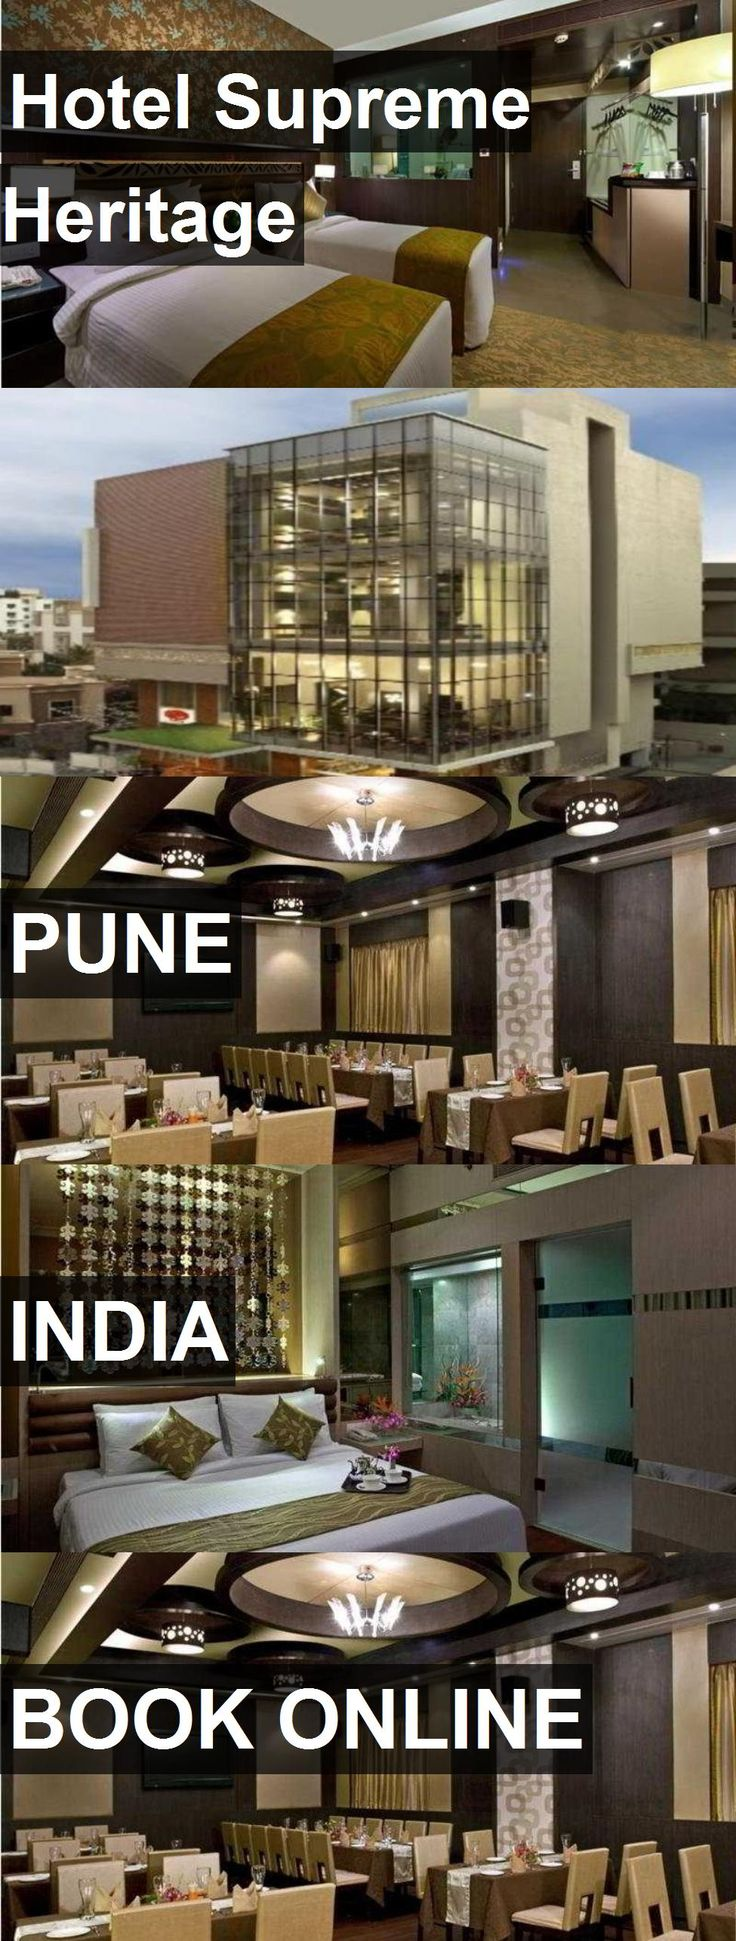 Hotel Hotel Supreme Heritage in Pune, India. For more information, photos, reviews and best prices please follow the link. #India #Pune #HotelSupremeHeritage #hotel #travel #vacation